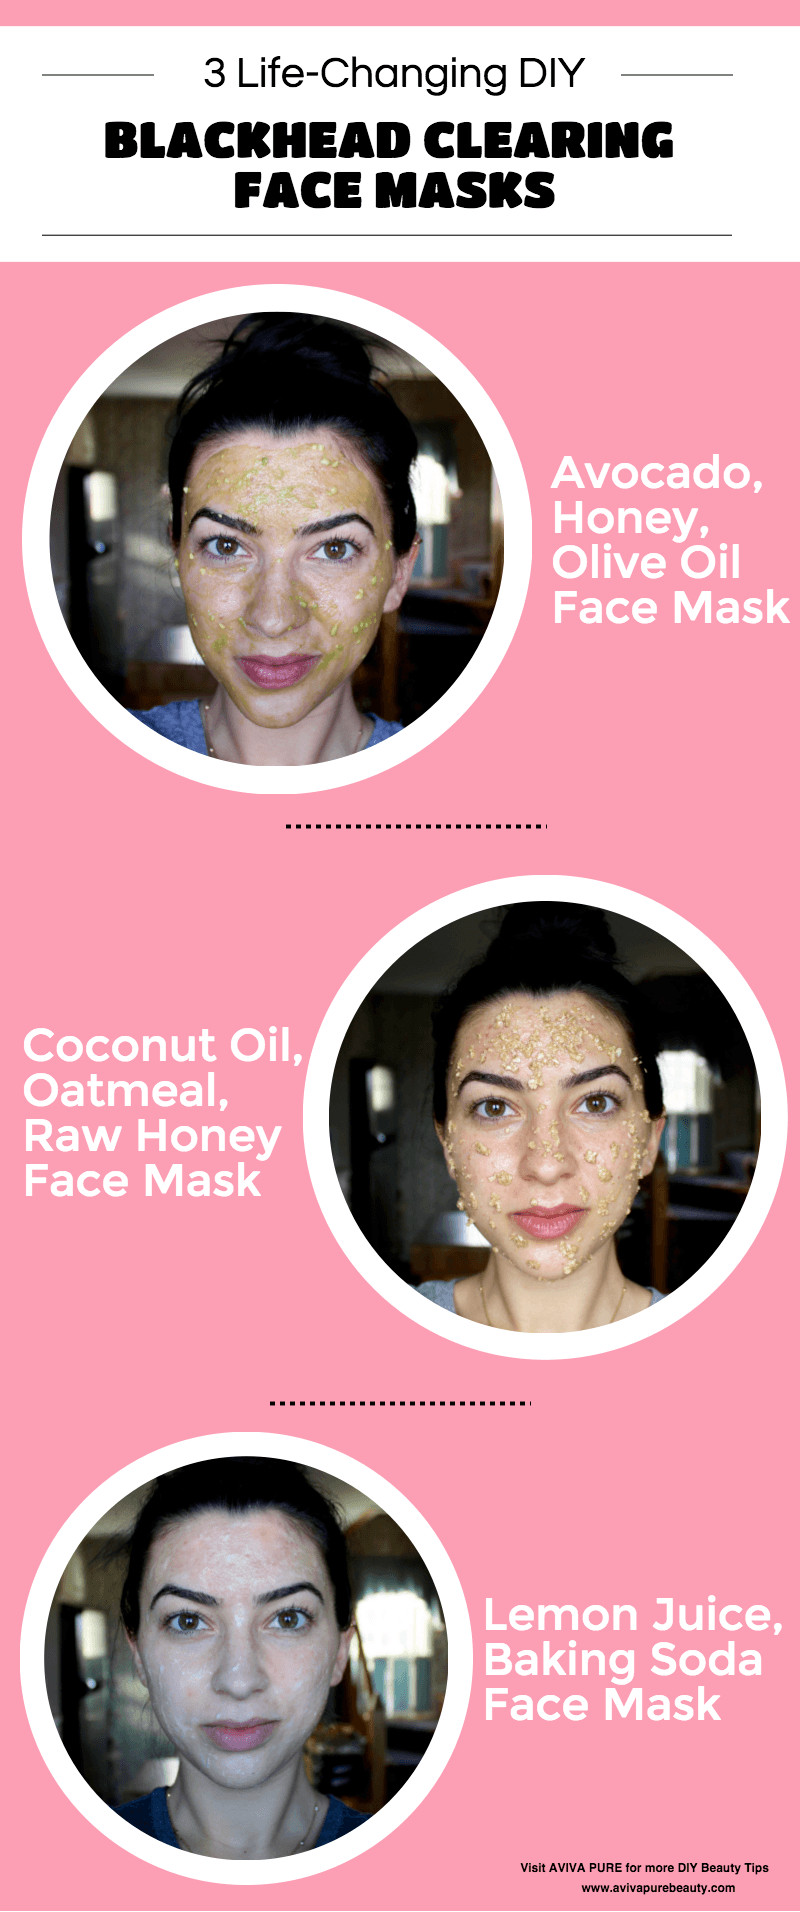 Best ideas about DIY Masks For Blackheads . Save or Pin DIY Face Masks for Blackheads Now.